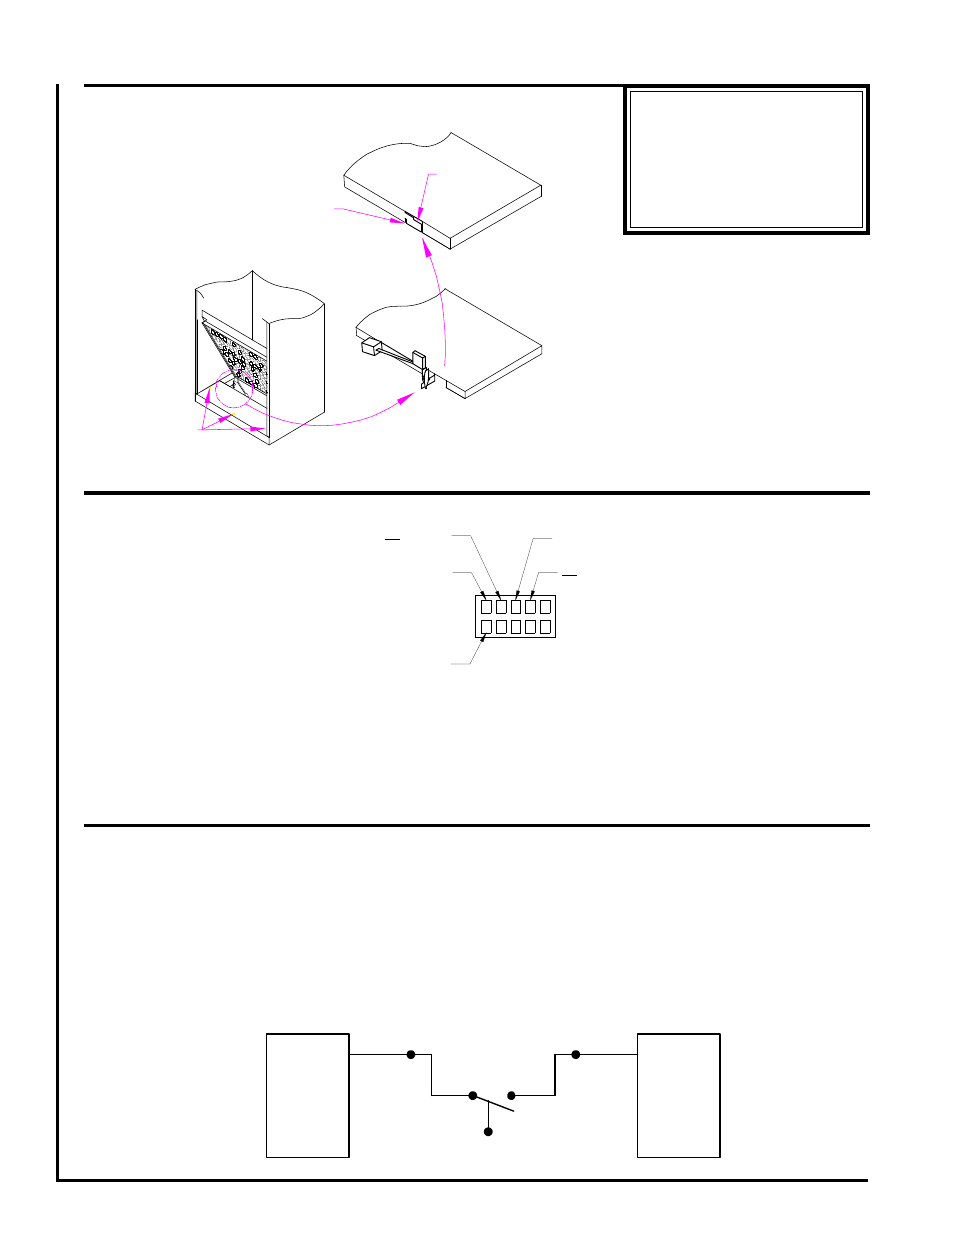 Auxillary Float Switch Installation Brushless Dc Motor Connections Diagram First Co Uc Vertical Front Return With Electric Heat User Manual Page 4